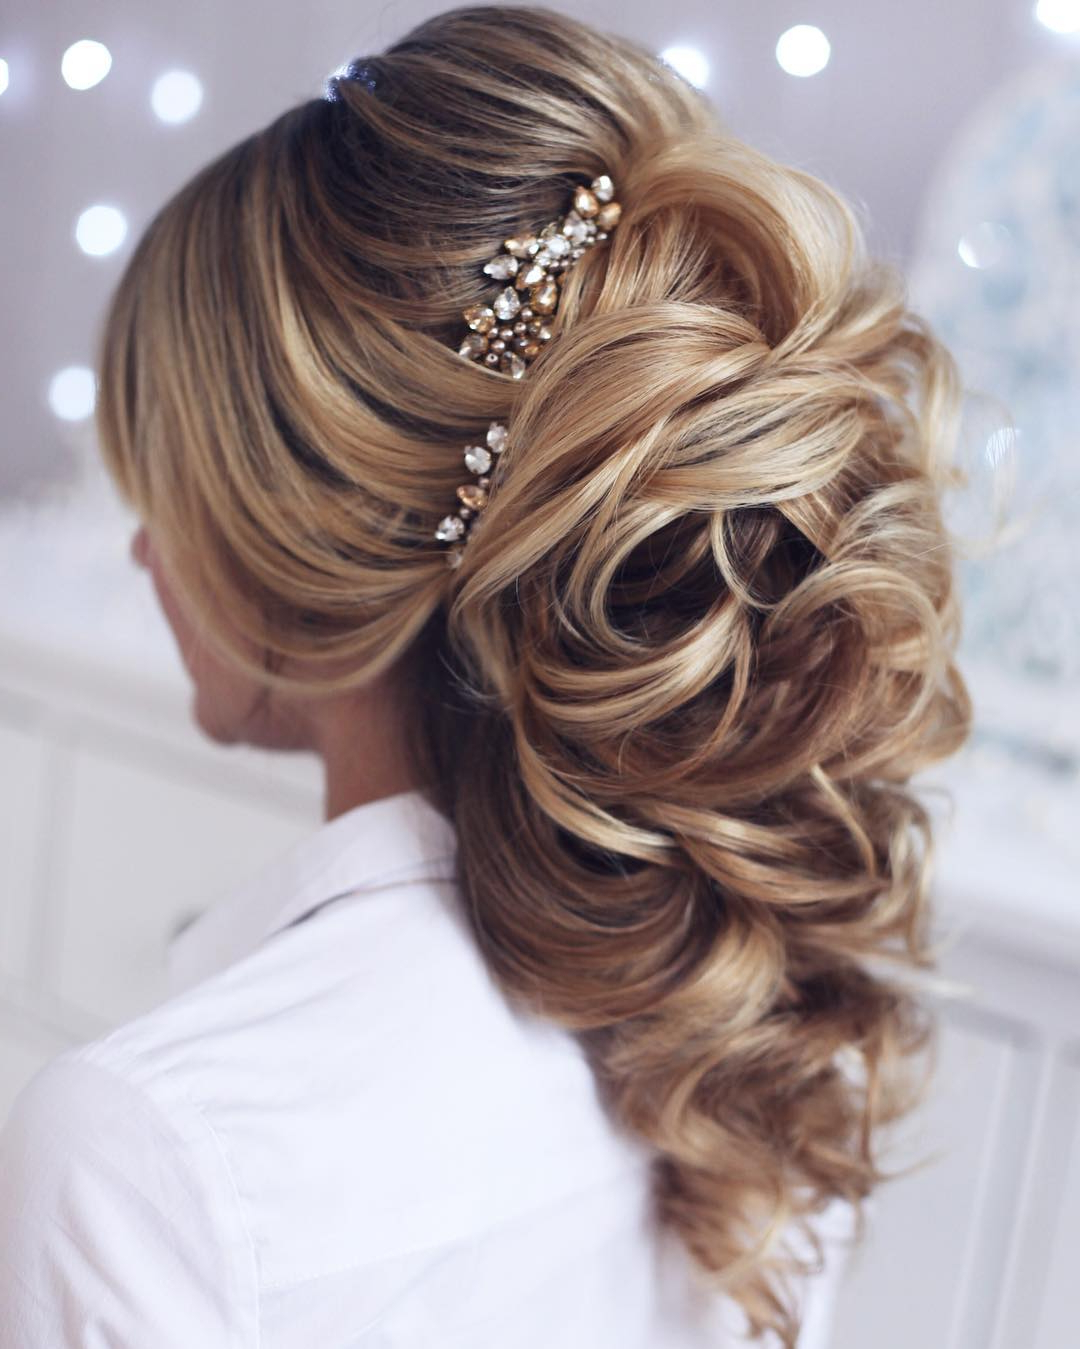 Popular Relaxed And Regal Hairstyles For Wedding Regarding 10 Lavish Wedding Hairstyles For Long Hair – Wedding Hairstyle Ideas (View 12 of 20)